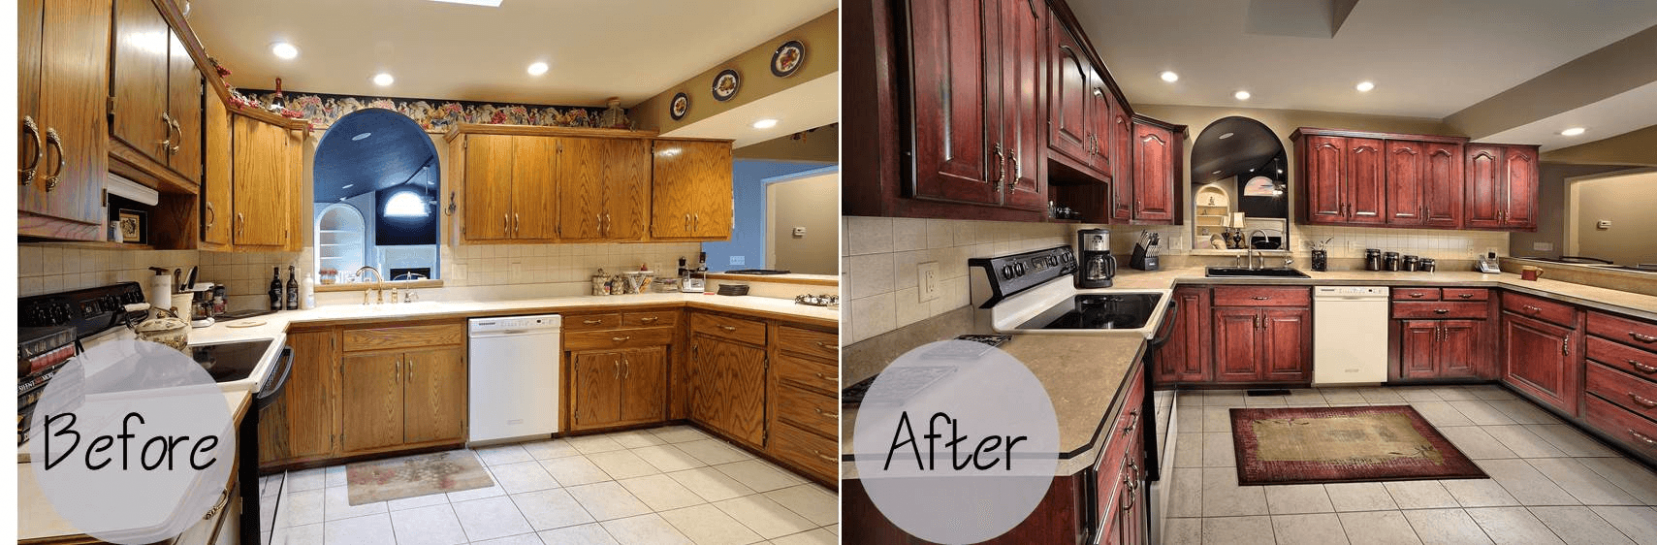 Kitchen Cabinets Refacing Before and After and the Cost - Refacing Kitchen Cabinets Cost